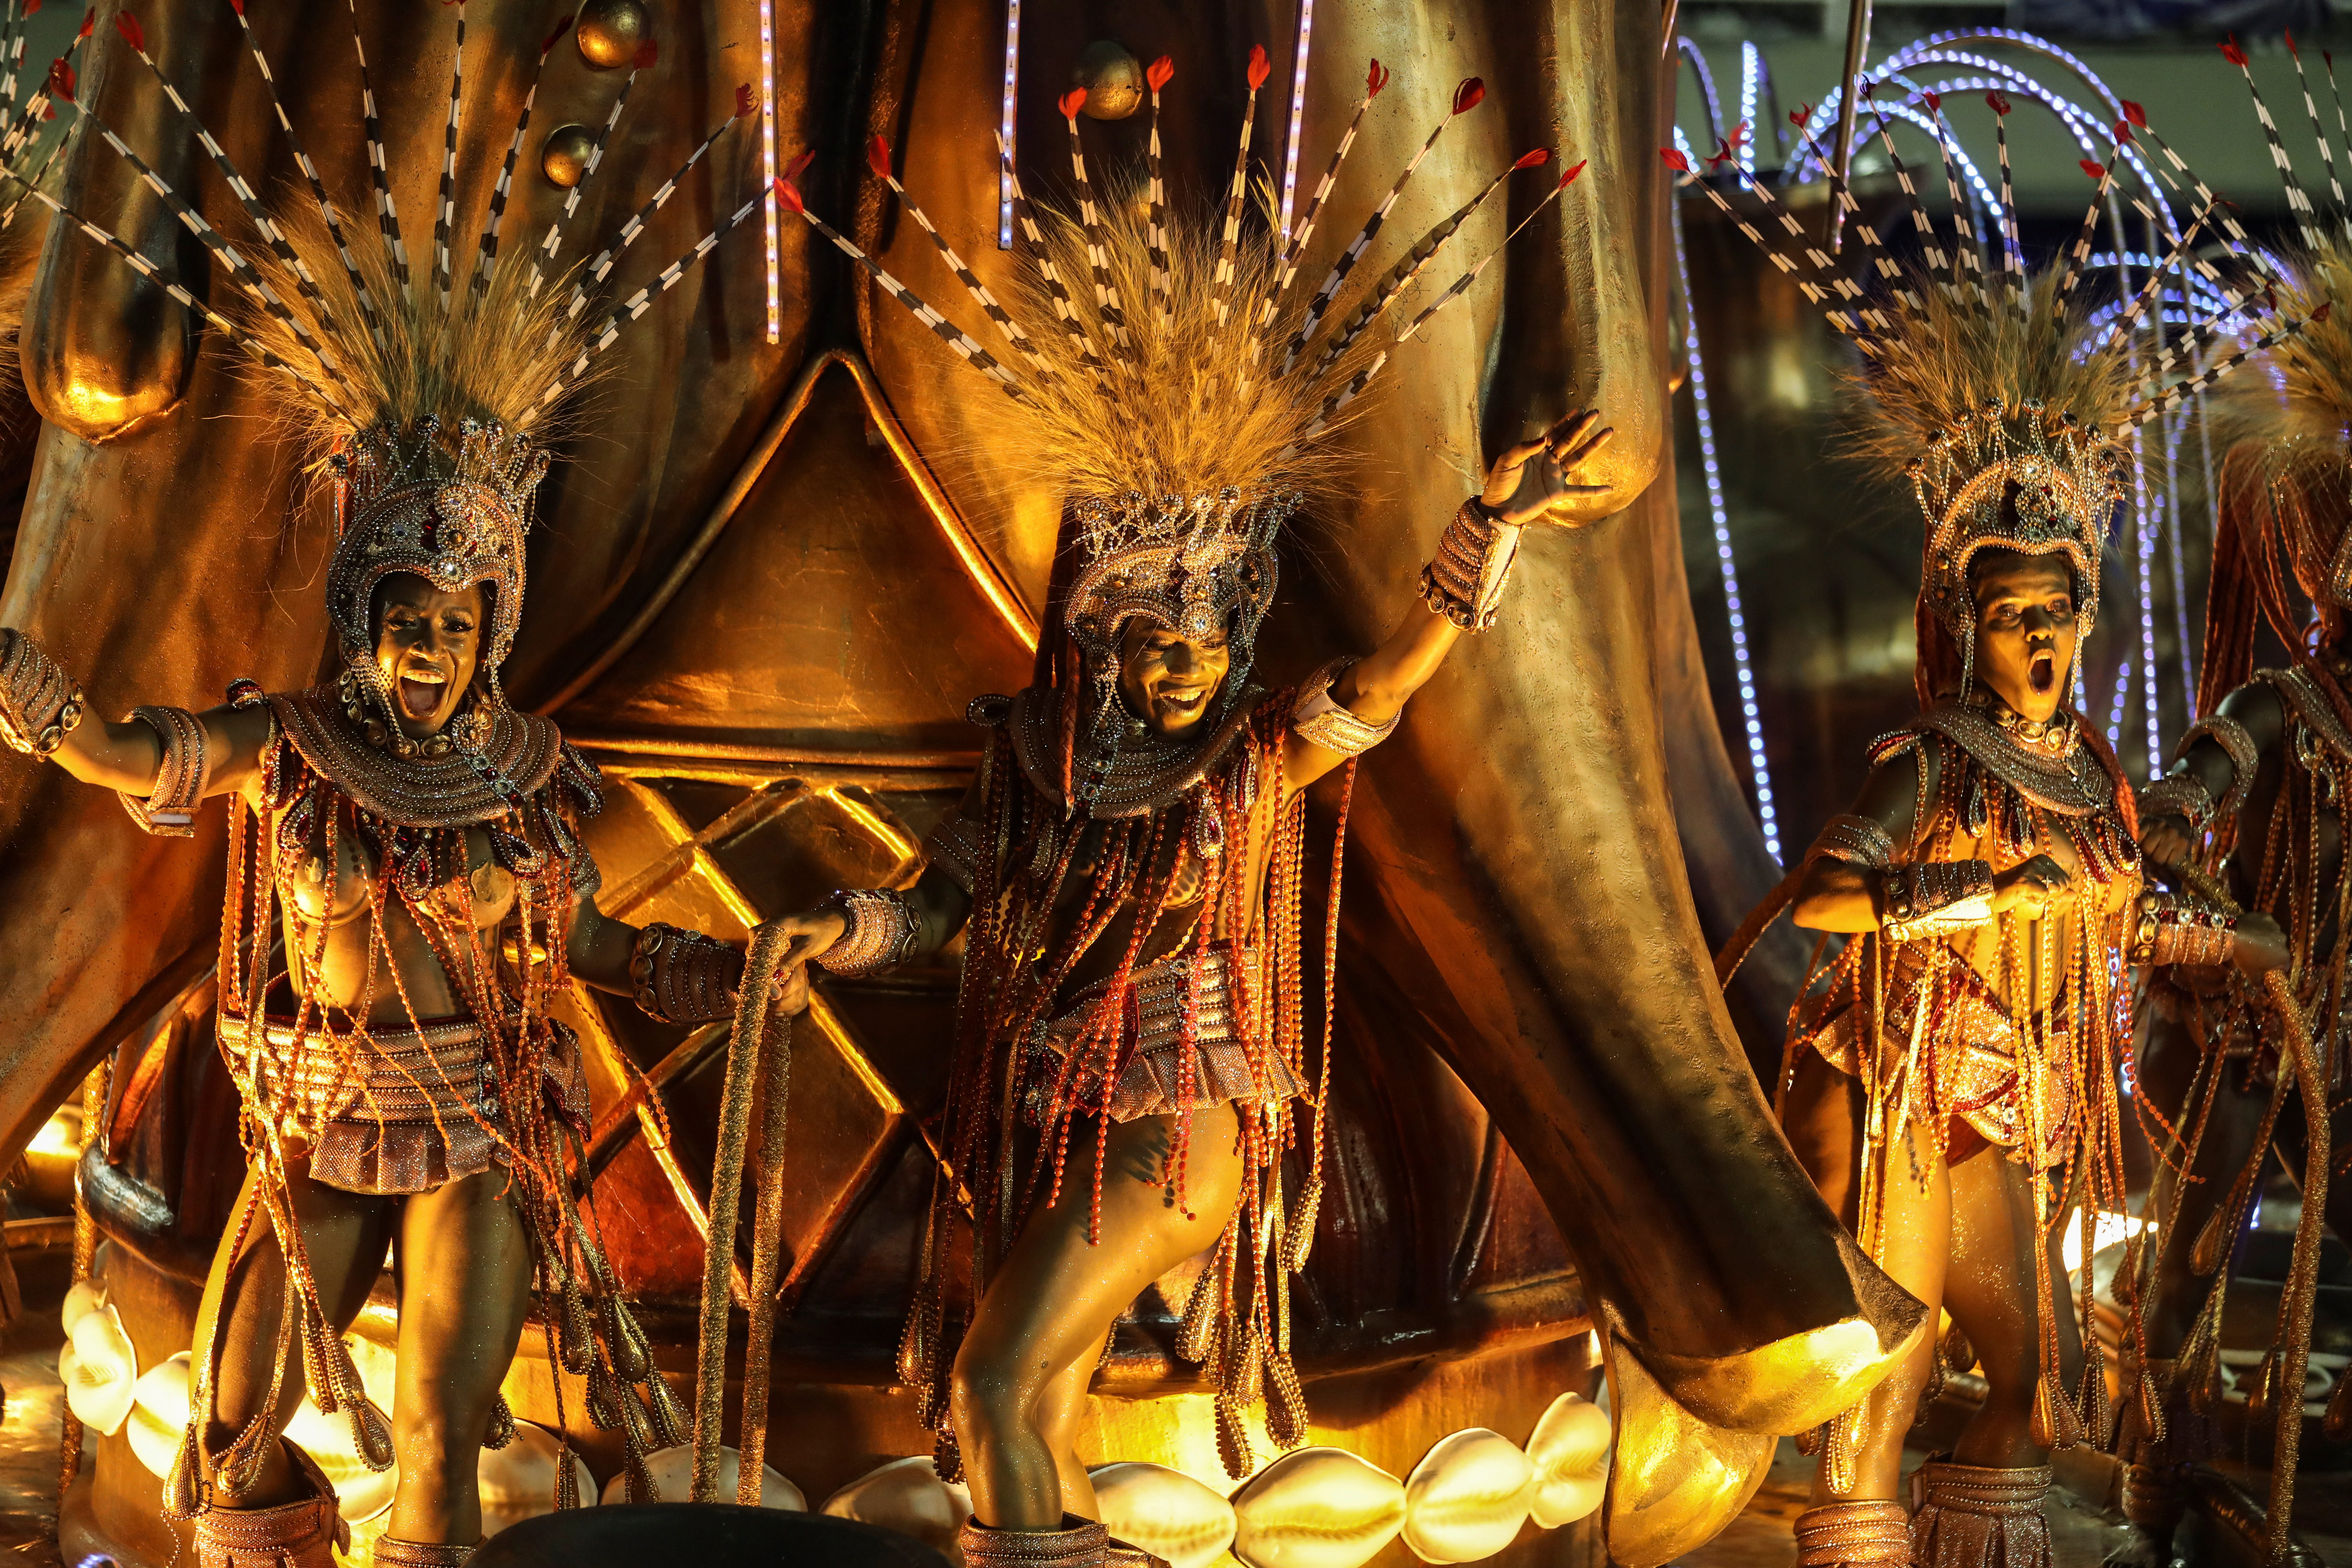 Revellers of Viradouro samba school perform on a float during the first night of the Carnival parade at the Sambadrome in Rio de Janeiro, Brazil February 23, 2020. REUTERS/Pilar Olivares